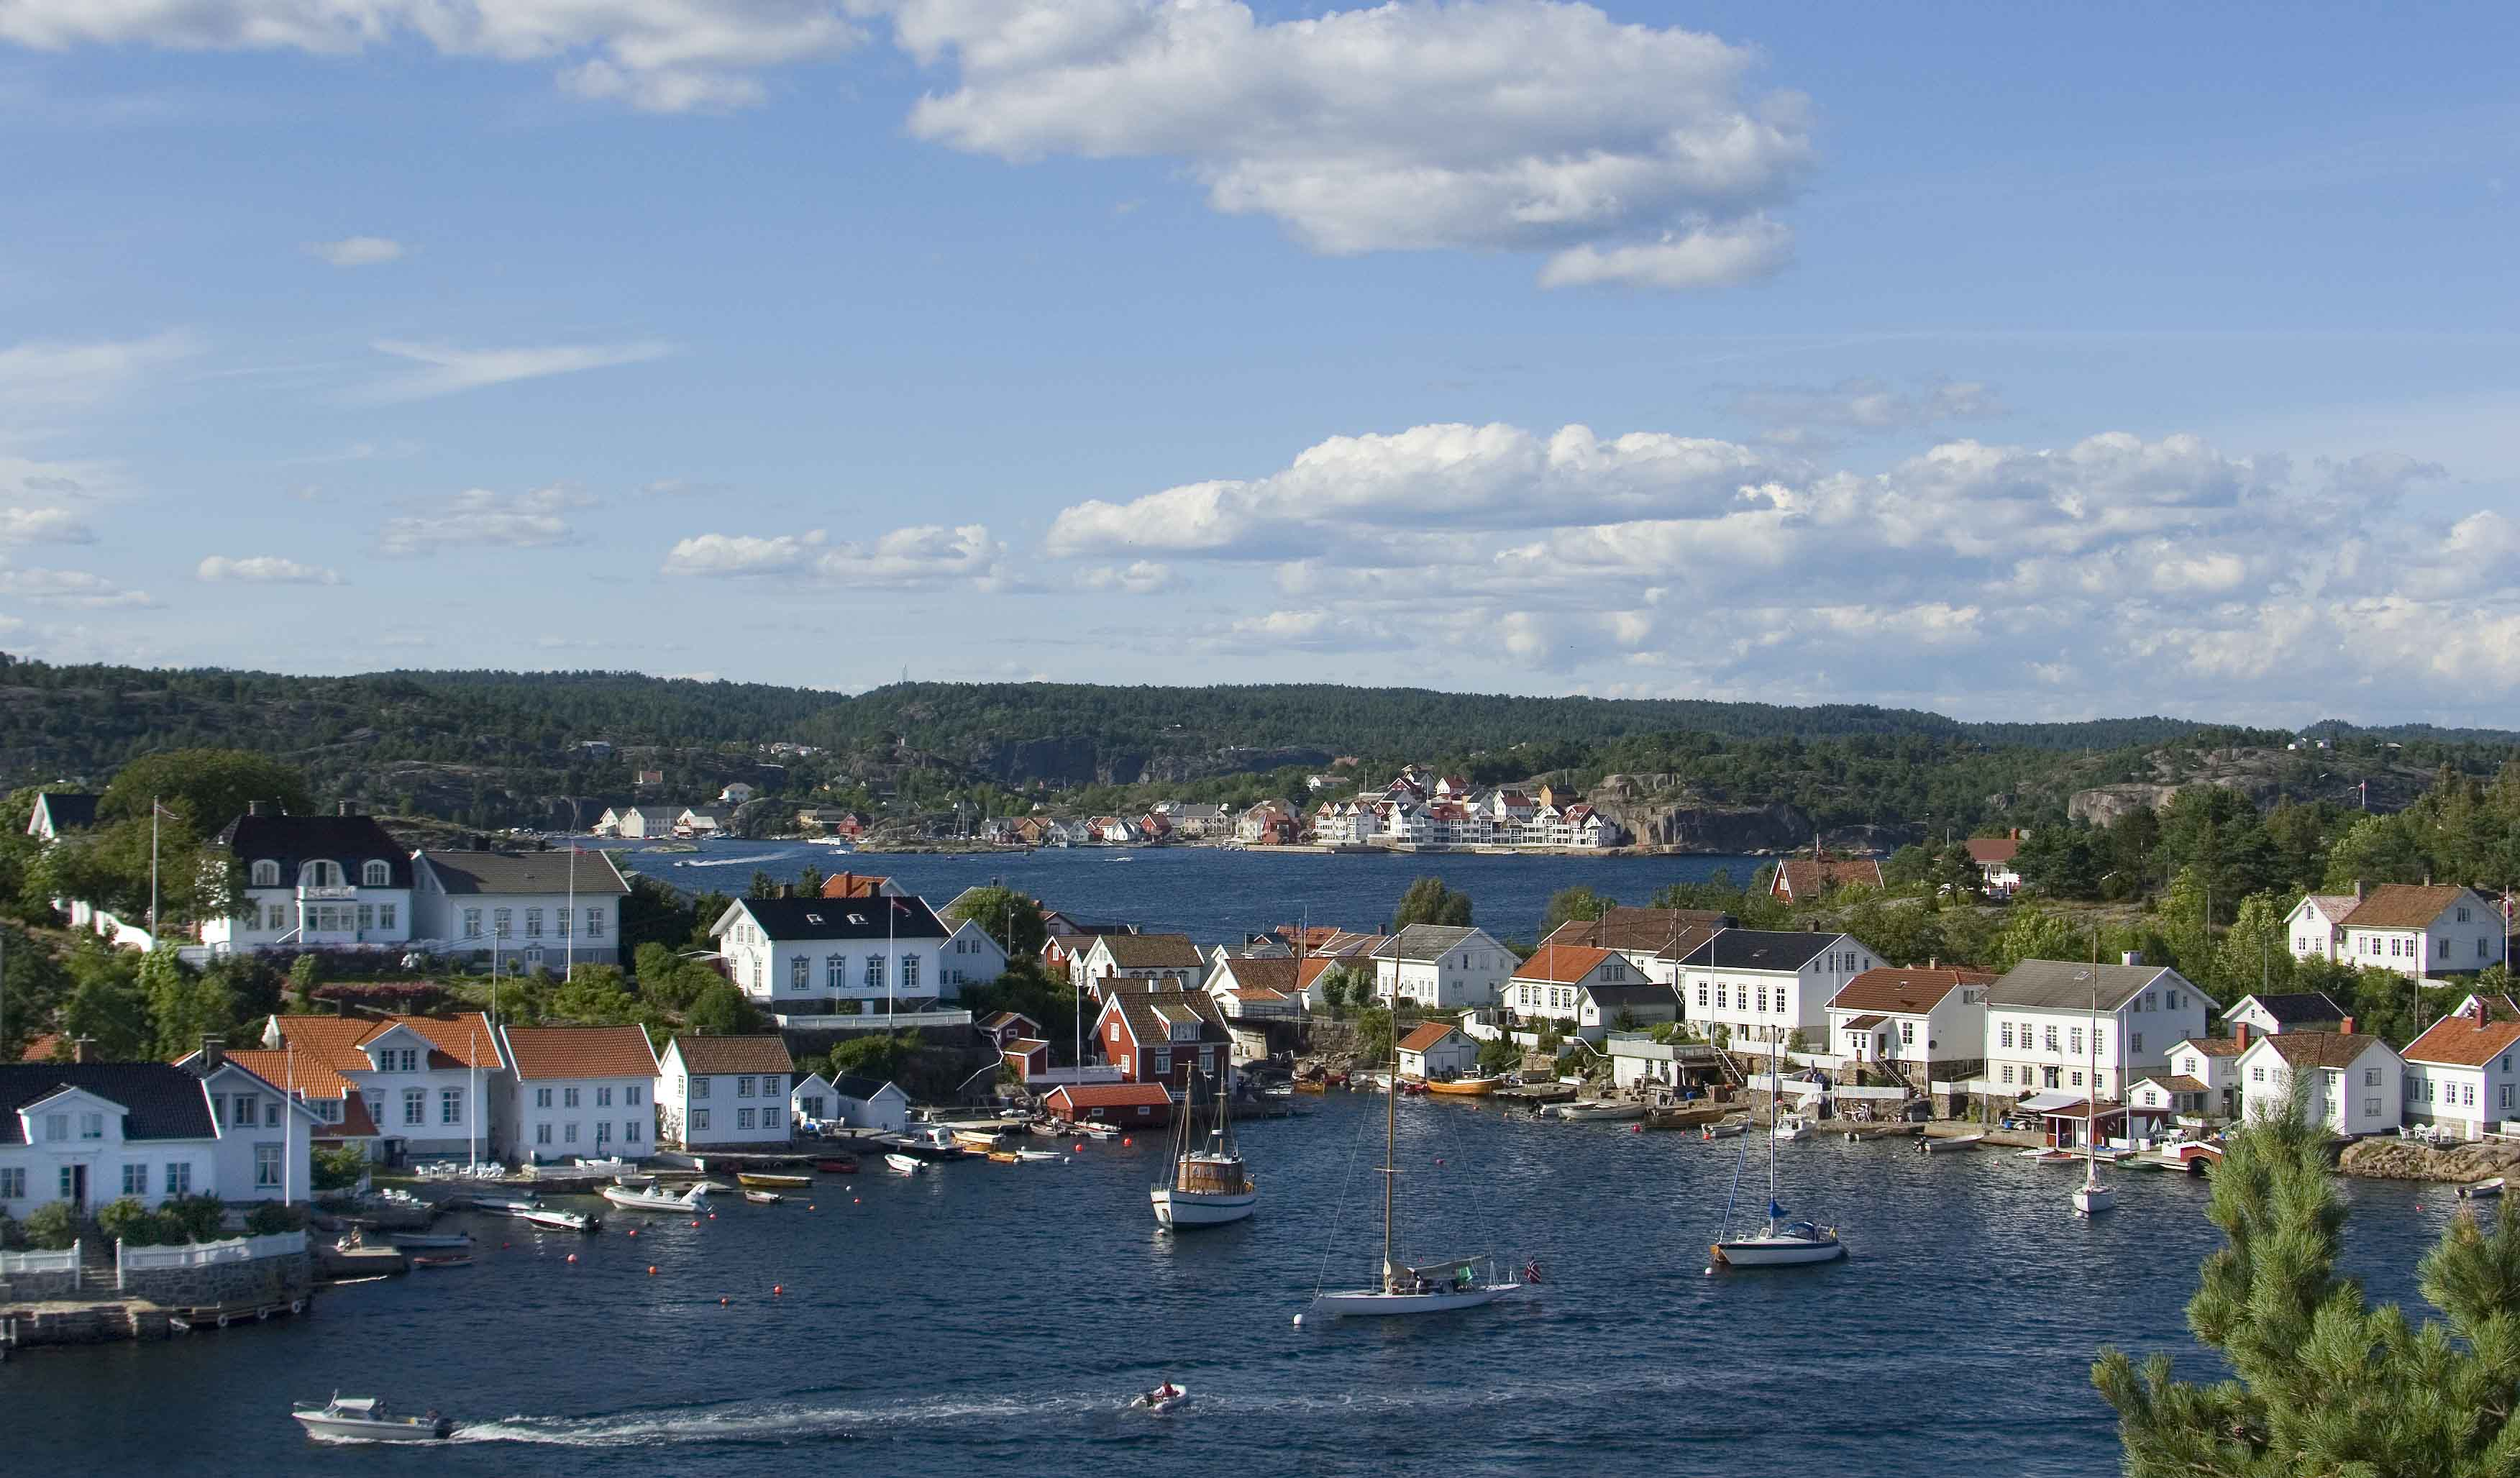 Skerries, houses and boats at Lyngør, Kristiansand.